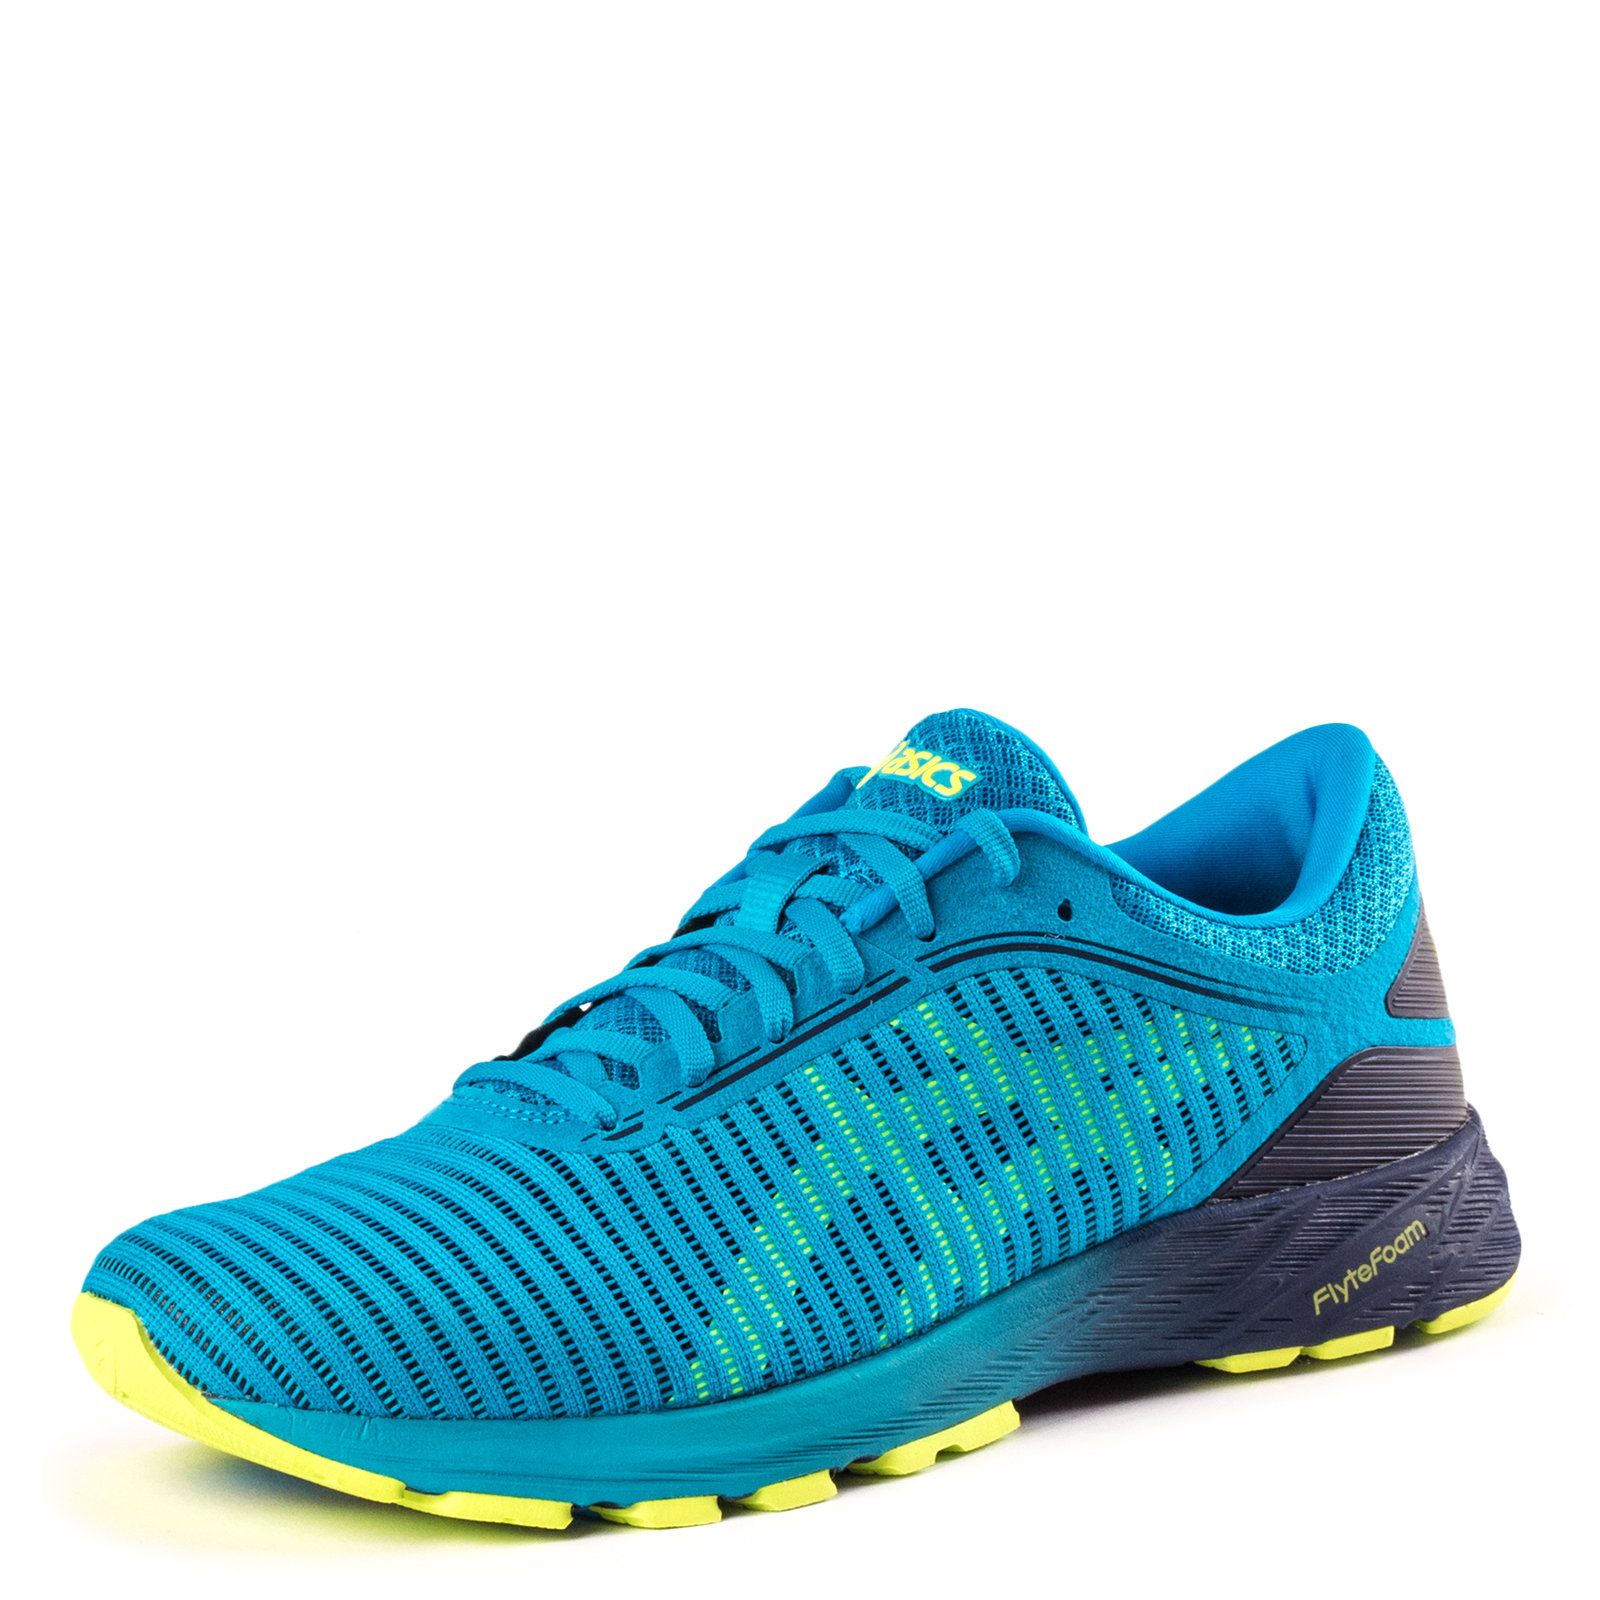 Available from 10.11 ASICS running shoes T7D0N-4107 available from 10 11 asics running t shirt 141240 1107